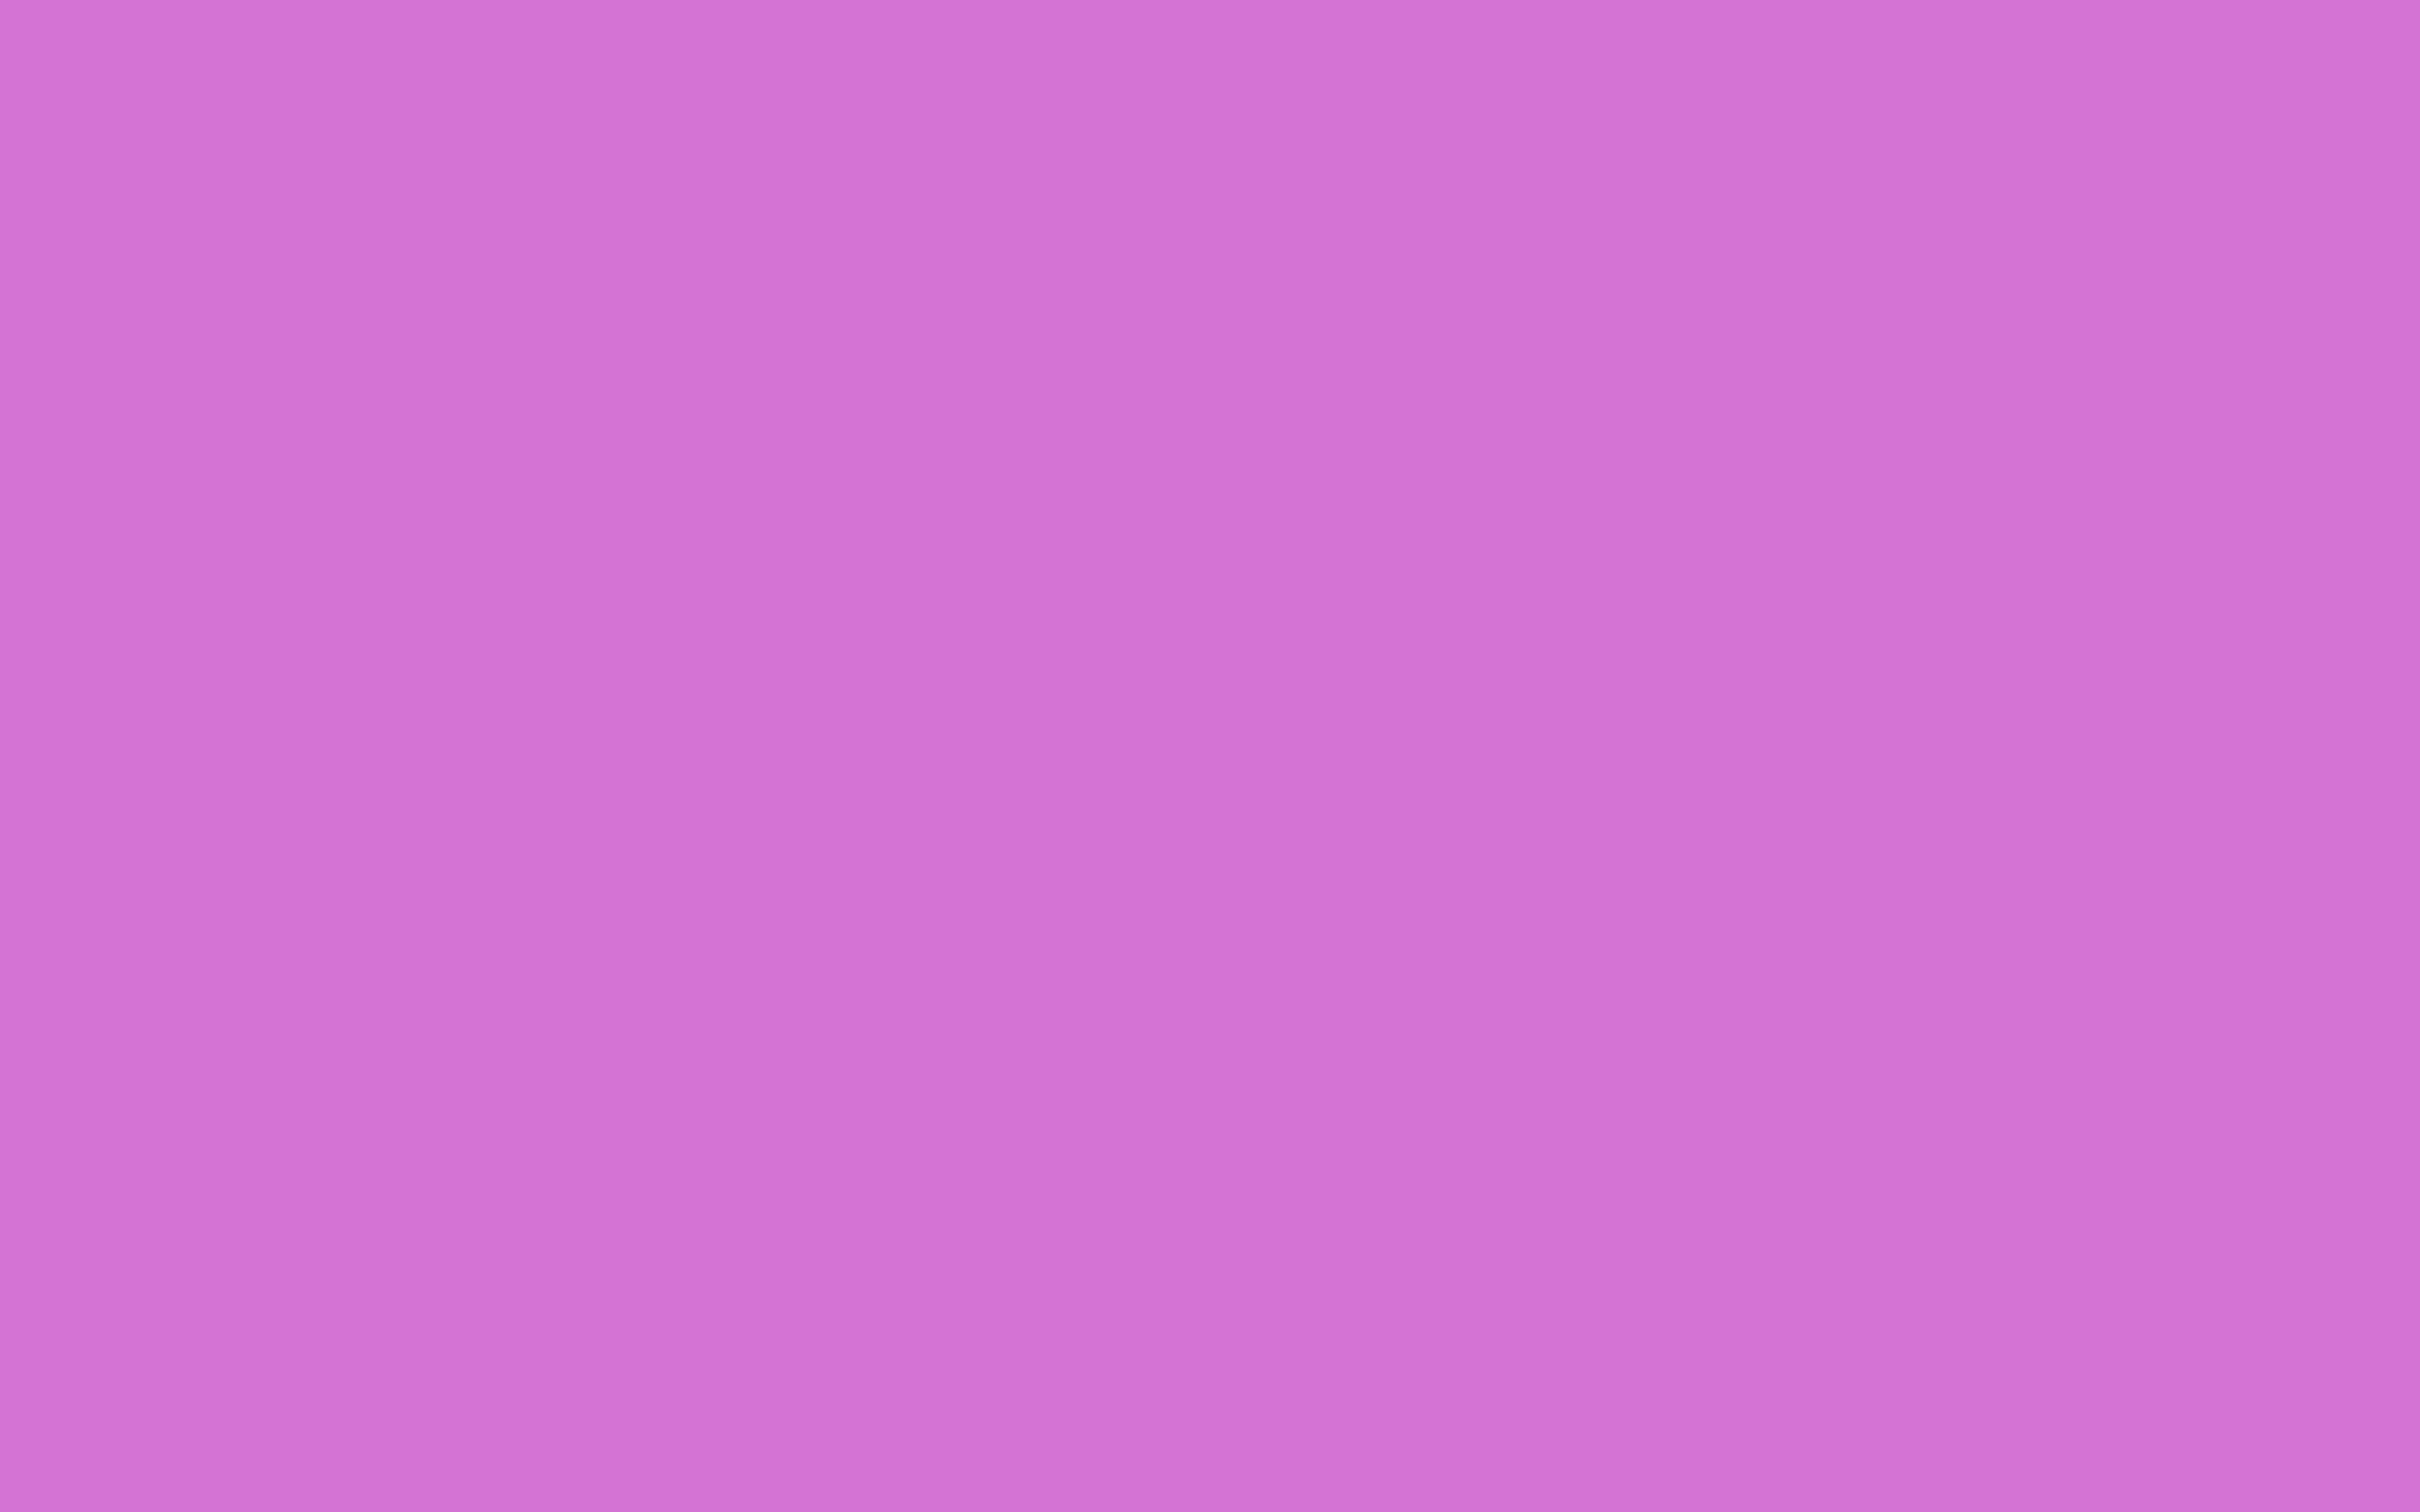 2880x1800 Deep Mauve Solid Color Background